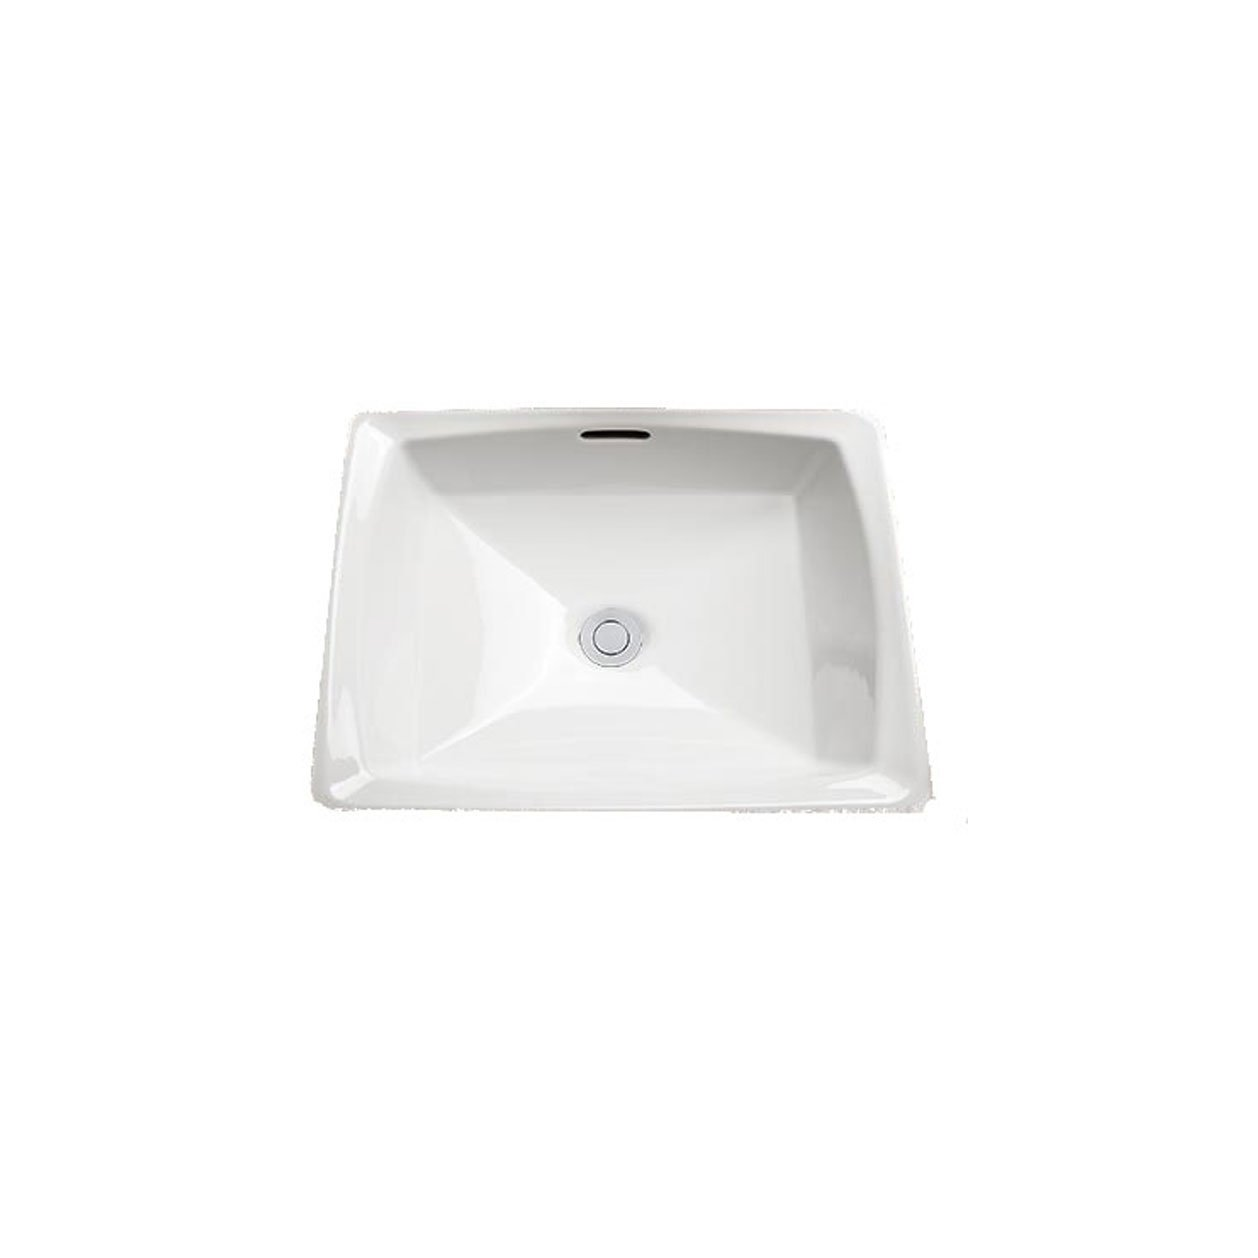 TOTO LT491G 1 Connelly Vitreous China Undermount Square Bathroom Sink, 17 L x 17 W x 7.5 H, Colonial White